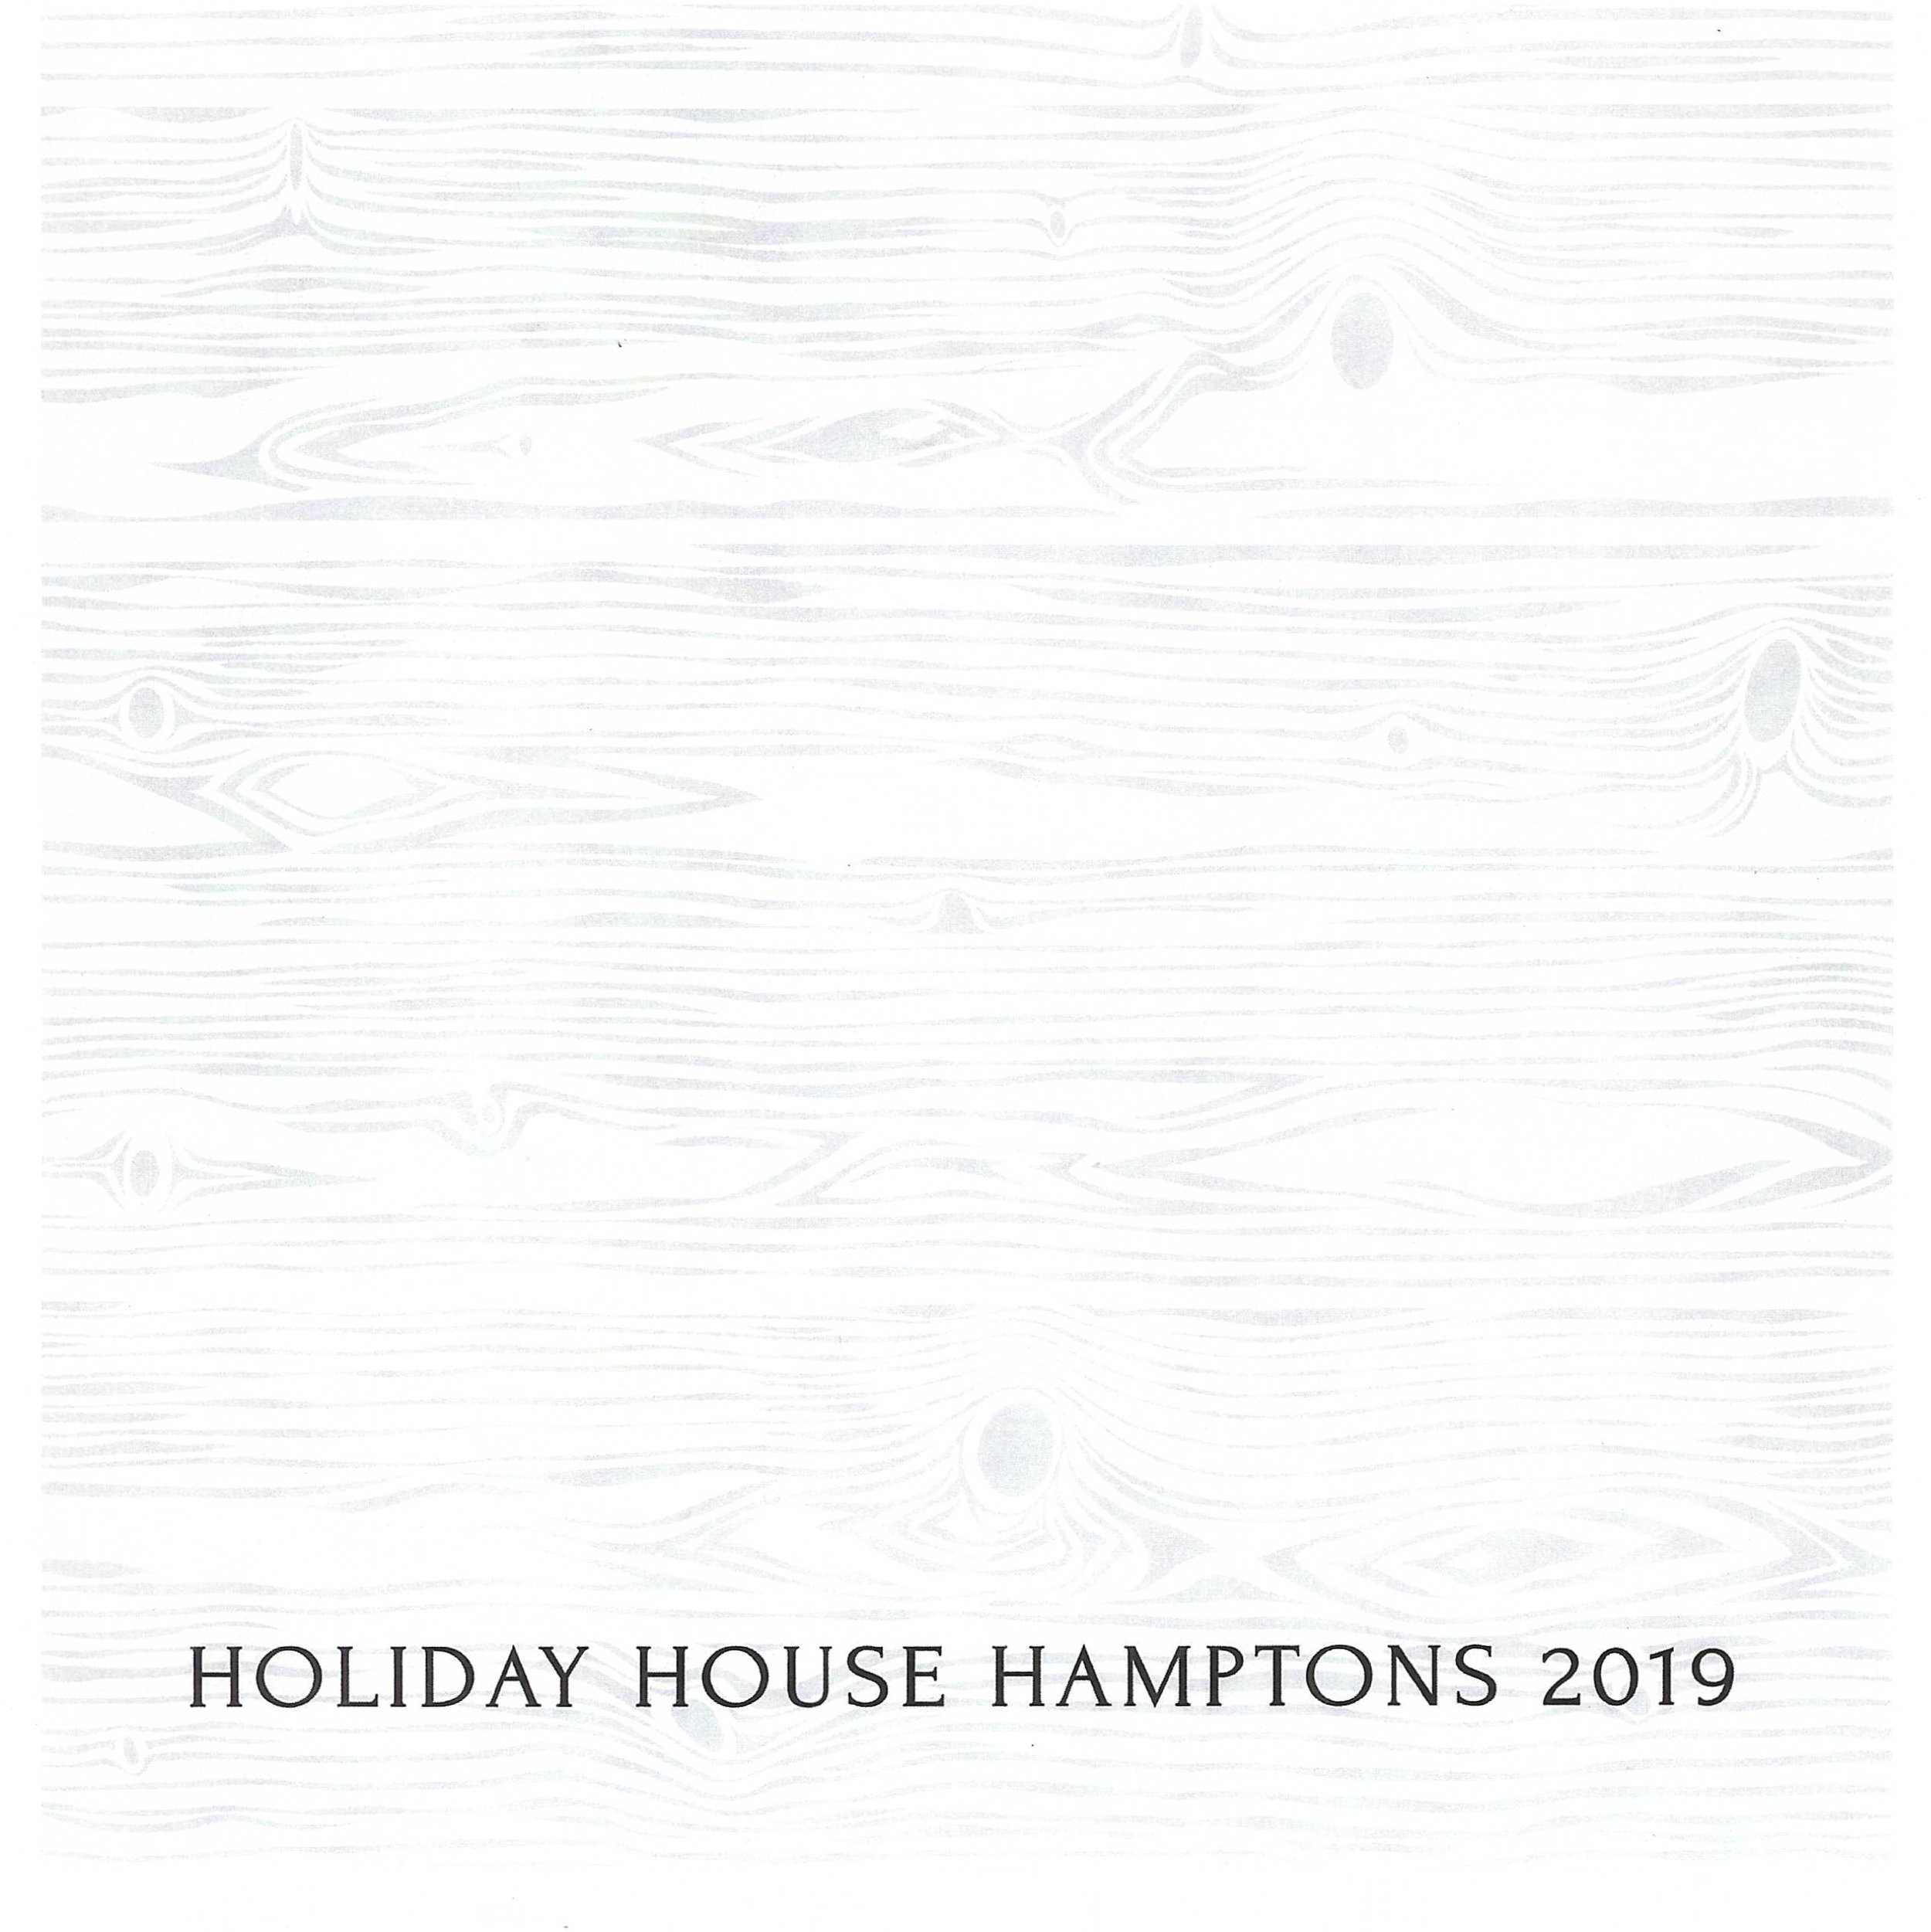 67.1 Holiday House Hamptons - Booklet_Summer 2019_cover.jpg